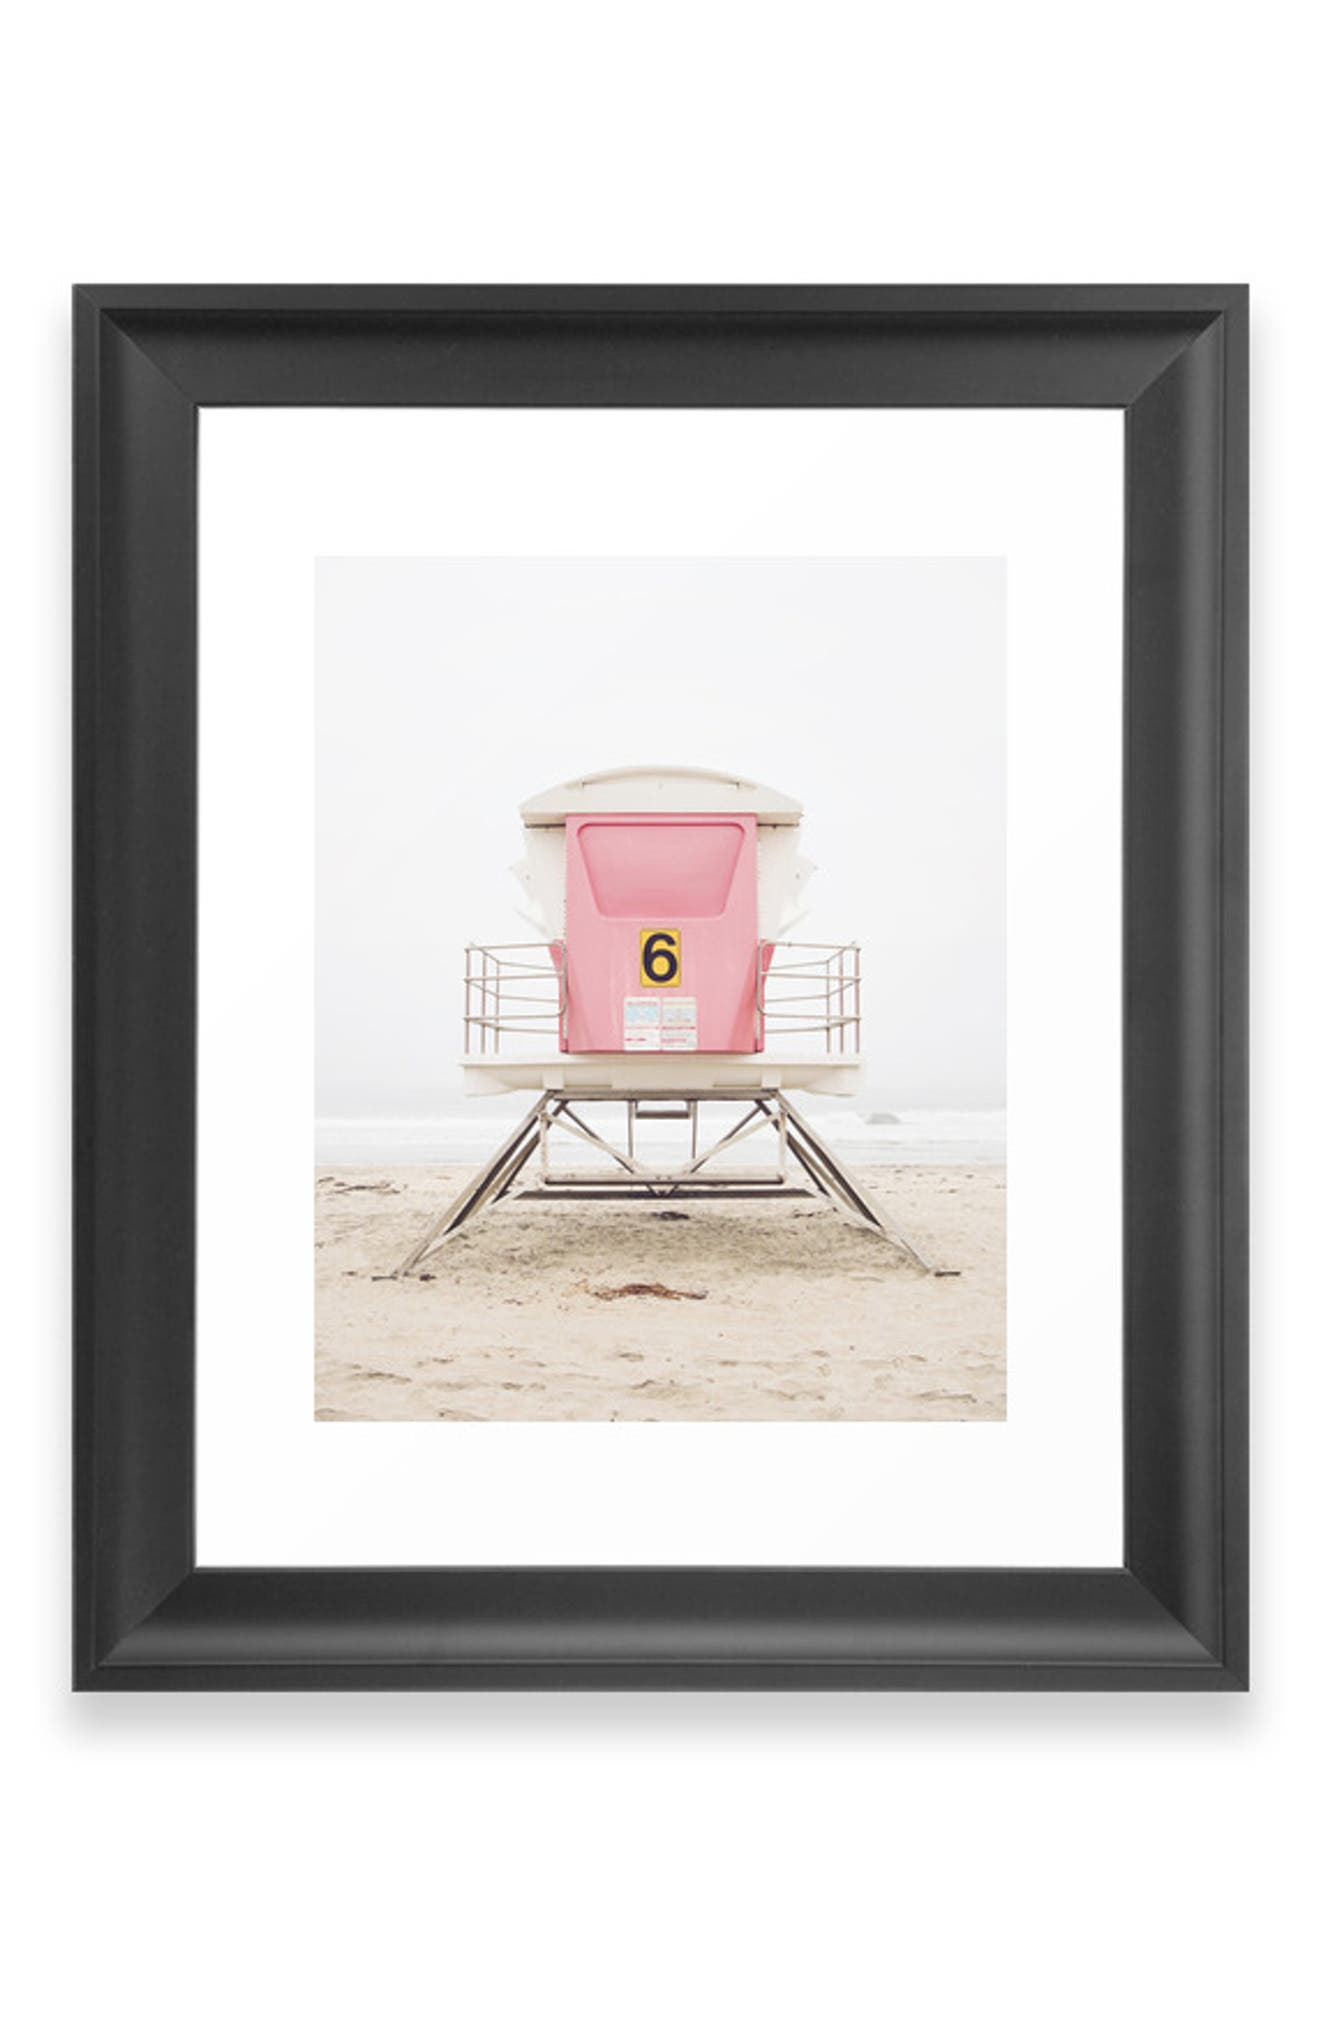 Bring the serenity of the beach into your home with a matte-finish art print available on its own or in a ready-to-hang frame. Style Name: Deny Designs Pink Tower Art Print. Style Number: 5868604 1. Available in stores.